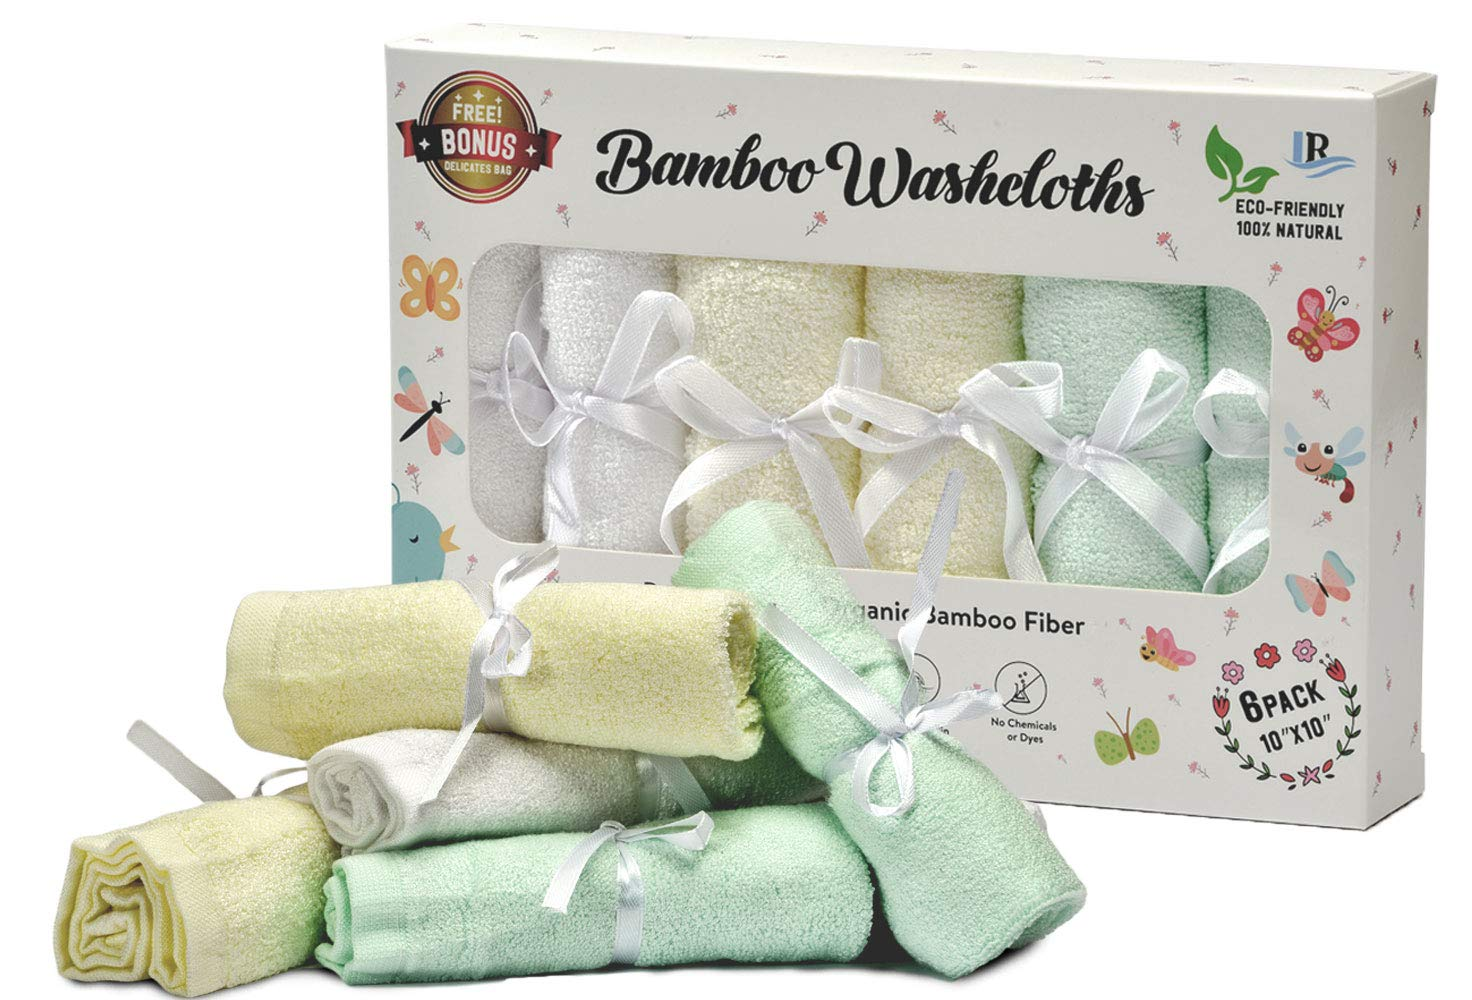 Bamboo Baby Washcloths 100% Organic – 6 Pack for Boys & Girls, 10X10, Extra Soft & Absorbent Face Towels, Free Mesh Laundry Bag – Perfect for Sensitive Skin – Great Baby Shower & Registry Gift Set 10X10 IndusRiviera